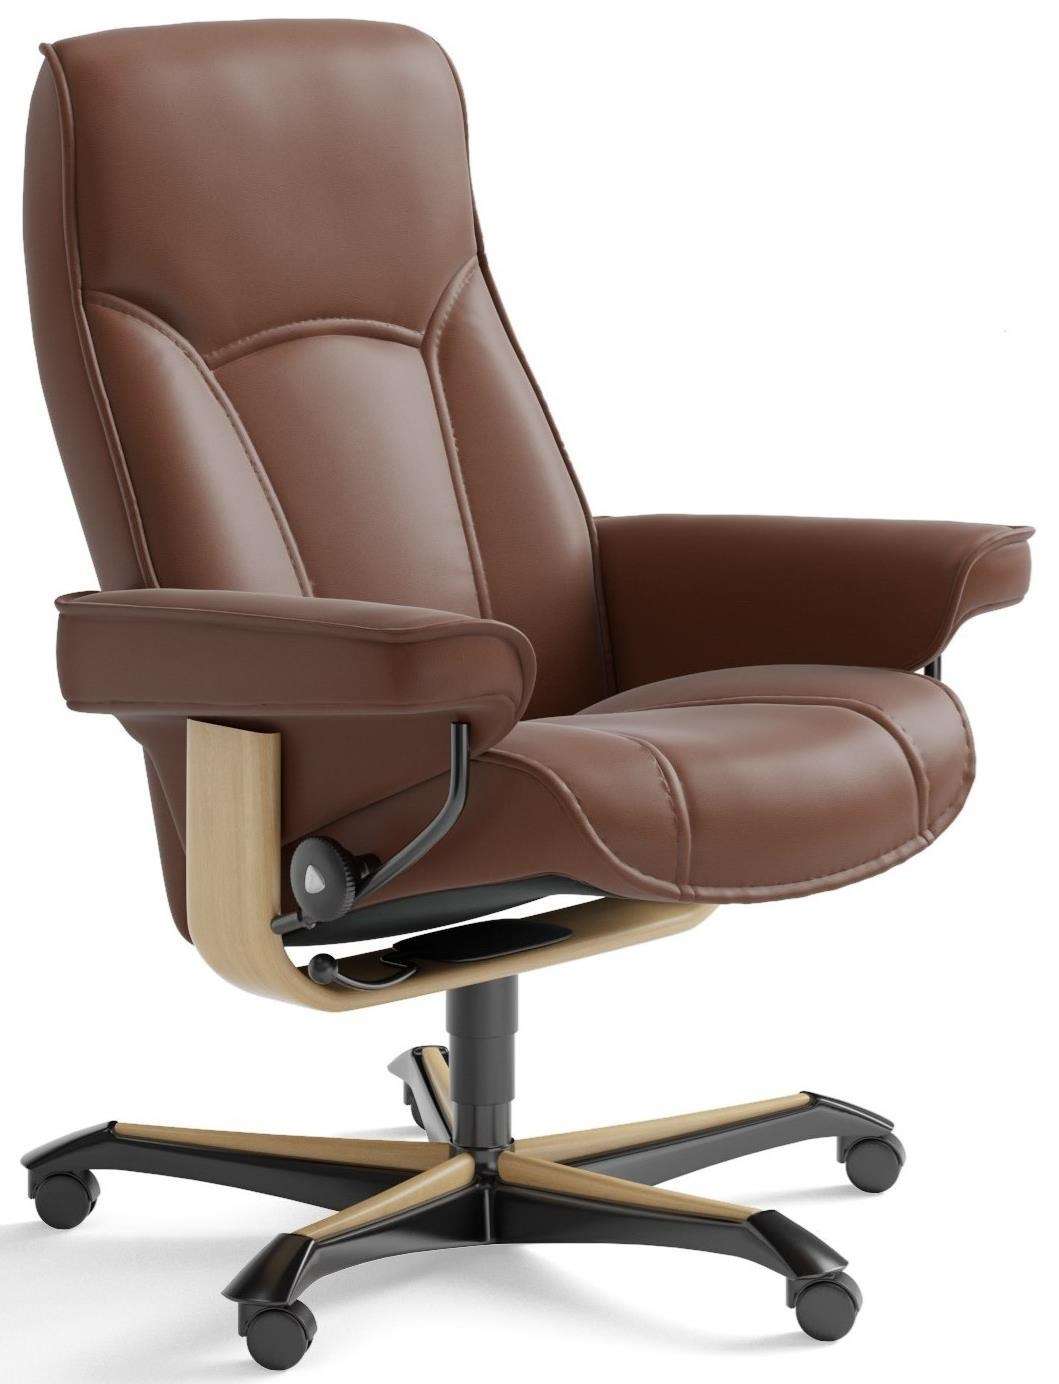 Stressless By Ekornes Stressless Senator Executive Office Chair